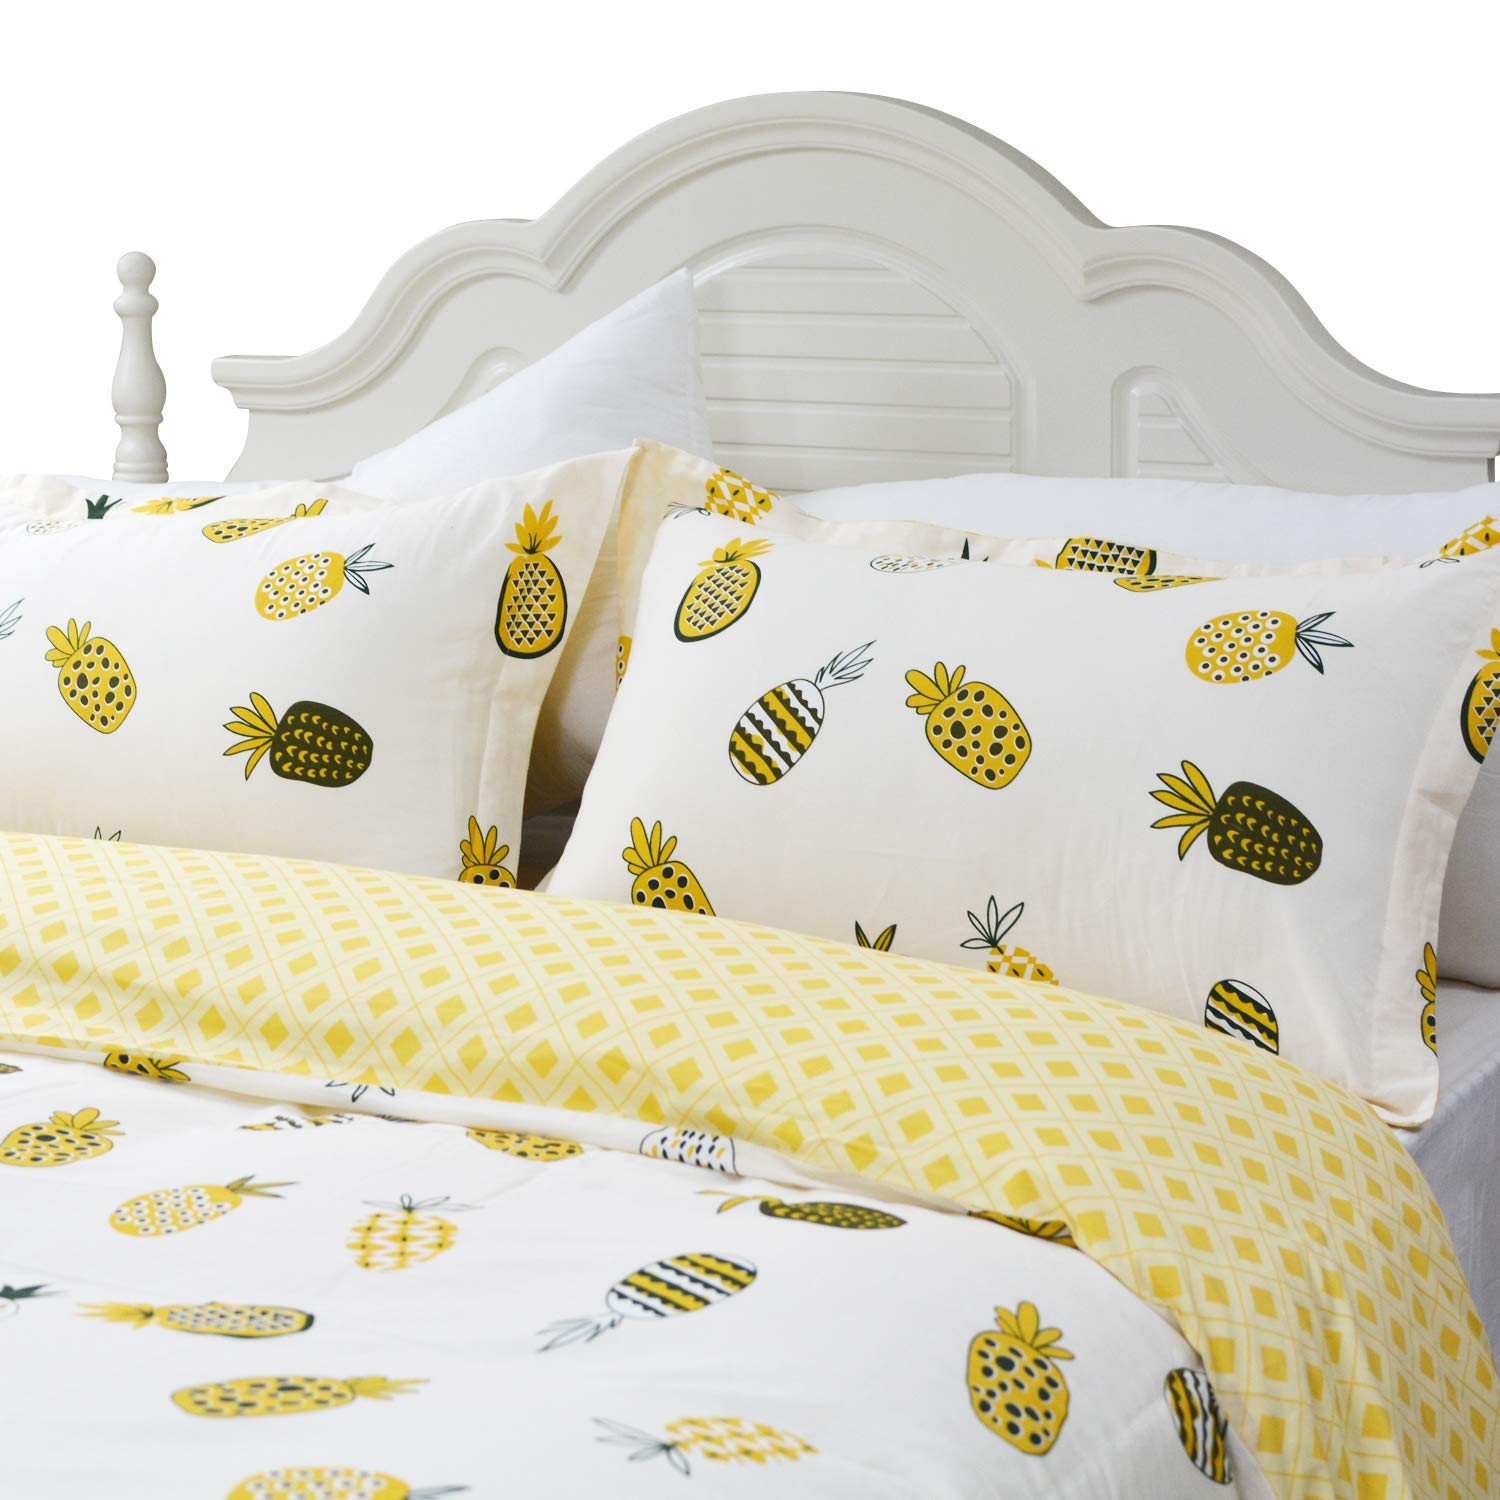 Twin Size, Simple Style FADFAY Butterfly Print Duvet Covers Pink Floral Cotton Girls Bedding Set 3 Pieces 1duvet Cover /& 2pillowcases